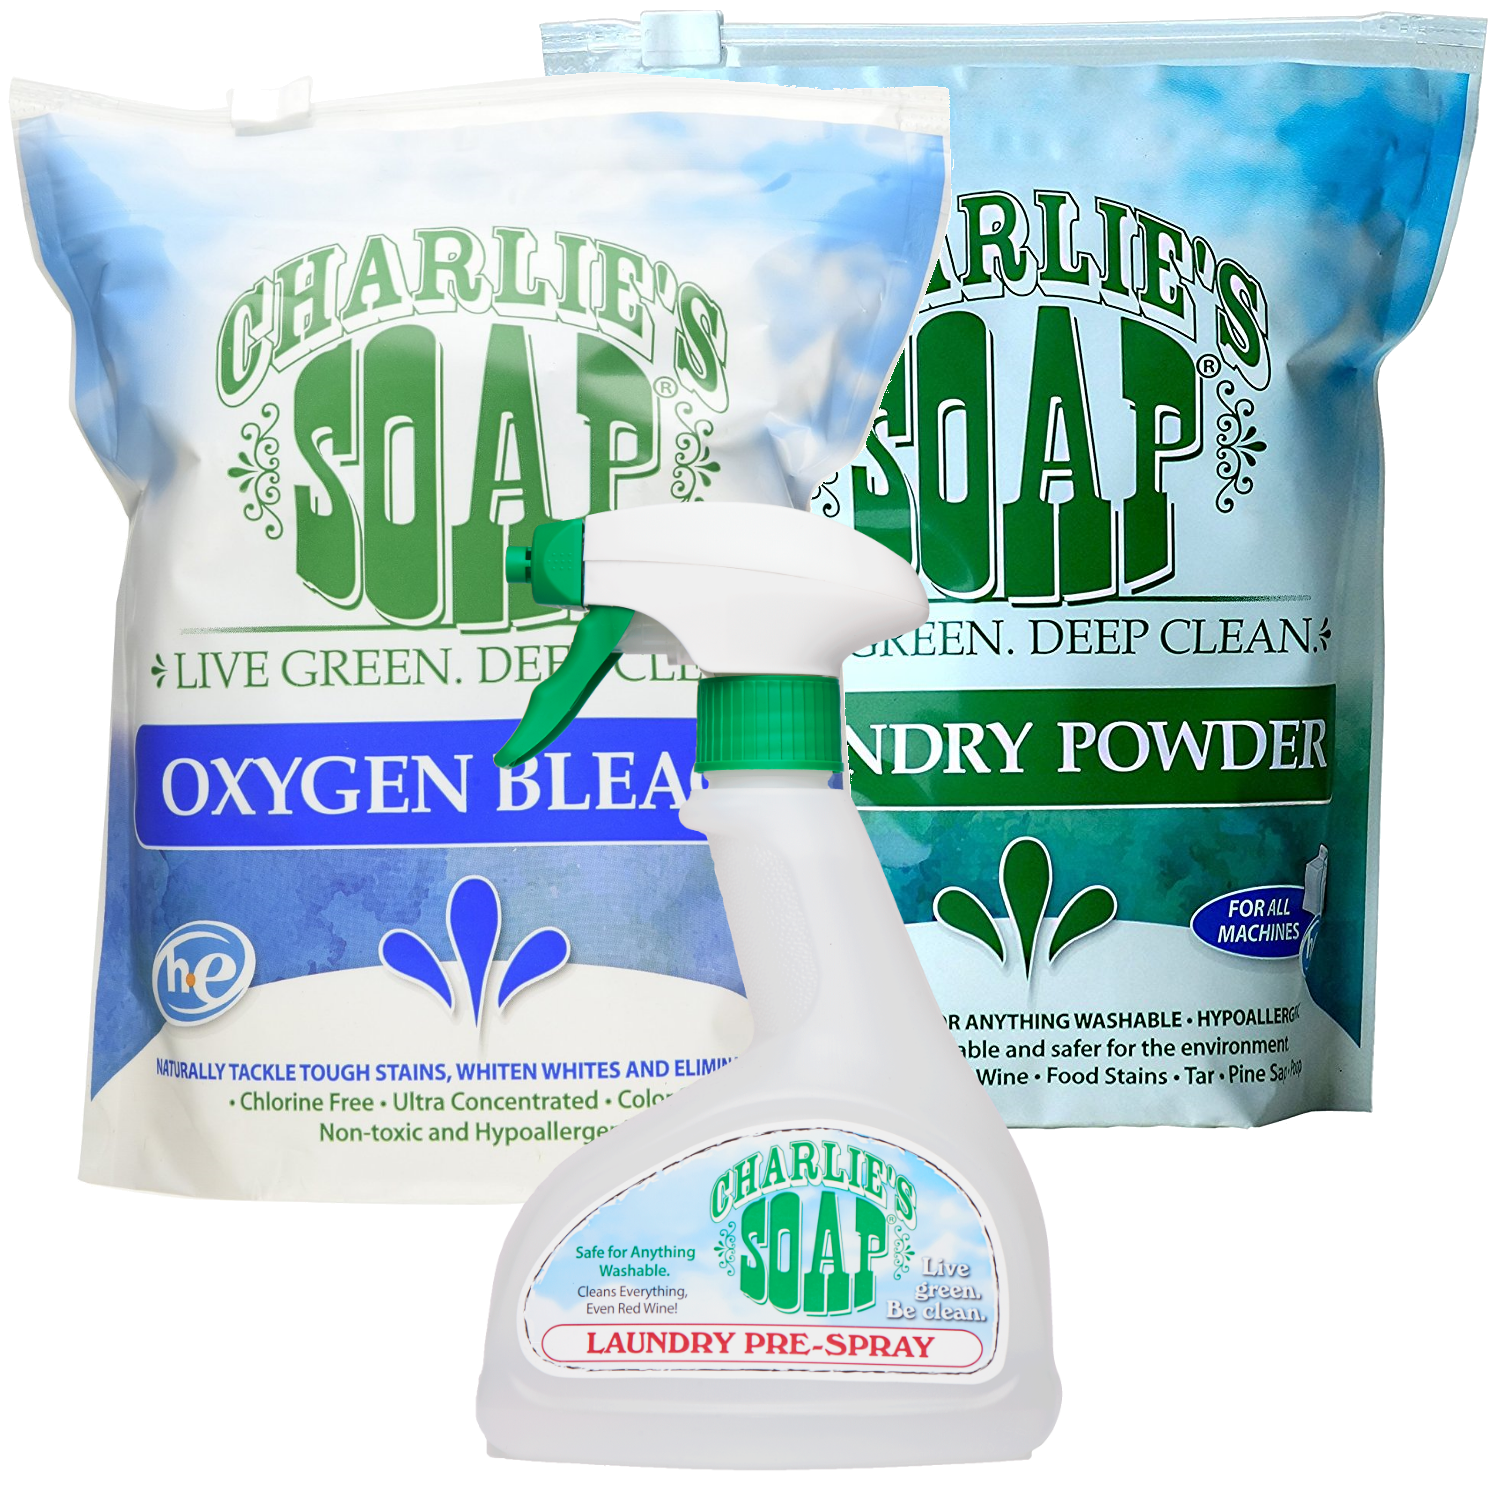 Charlies Laundry Powder Review: Charlie's Laundry Stain Fighting Kit